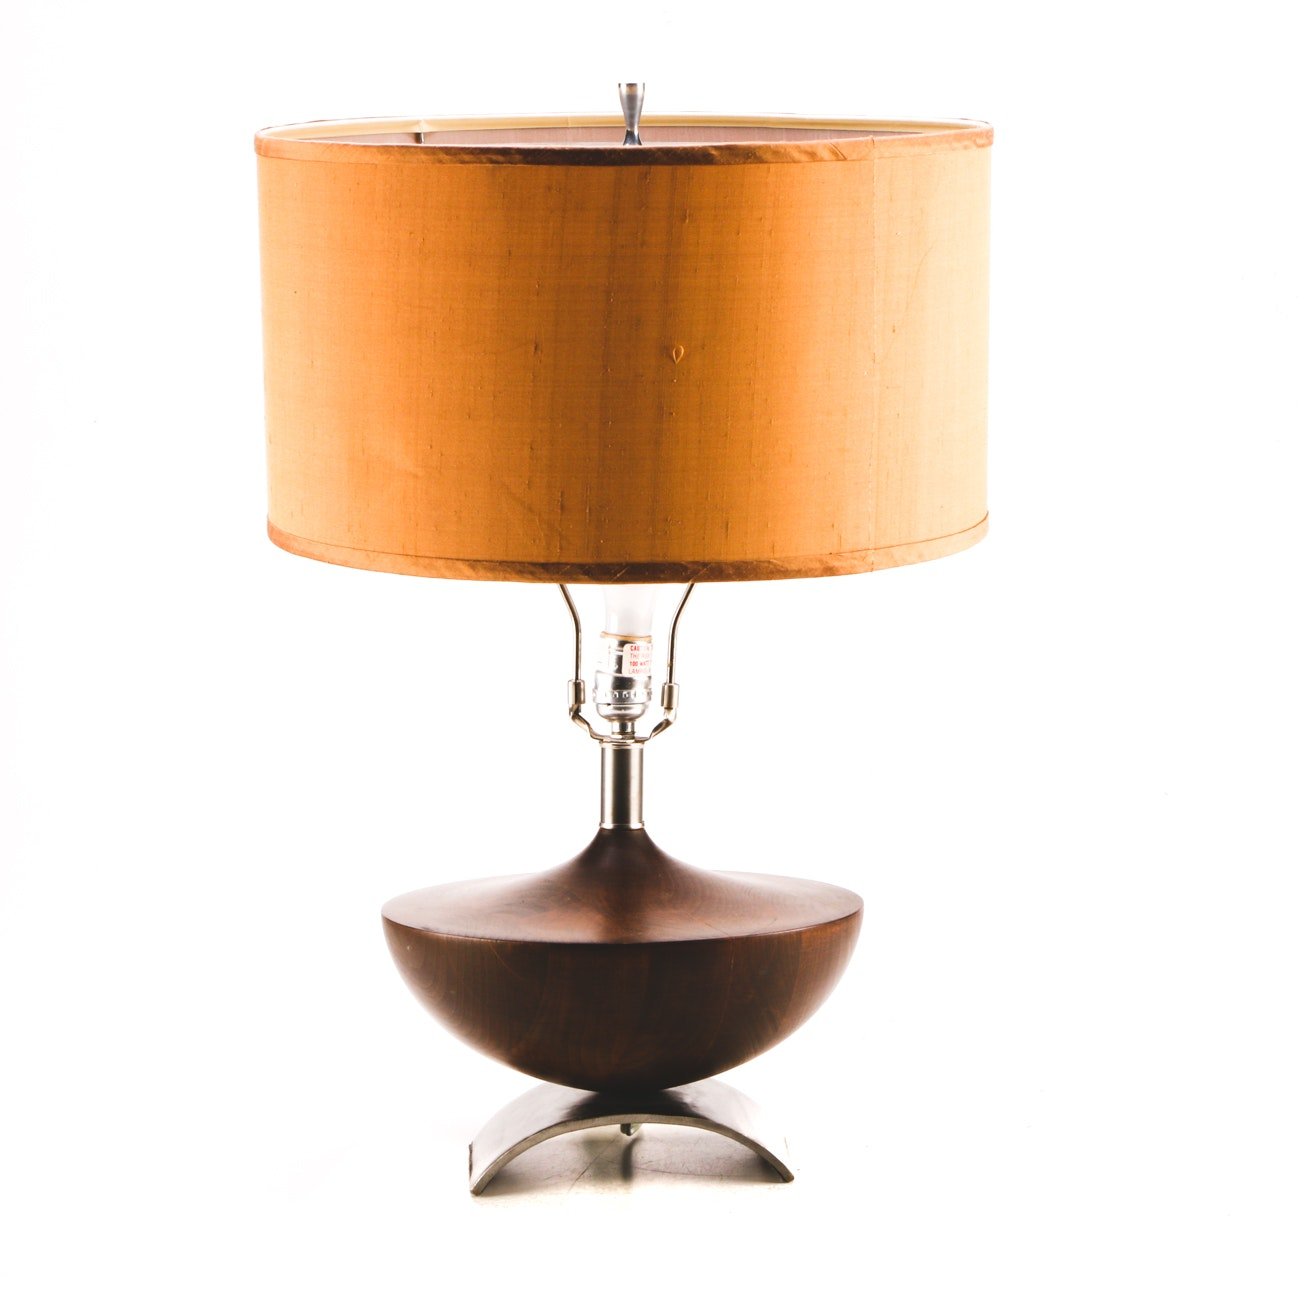 Mid-Century Modern Wood and Metal Table Lamp